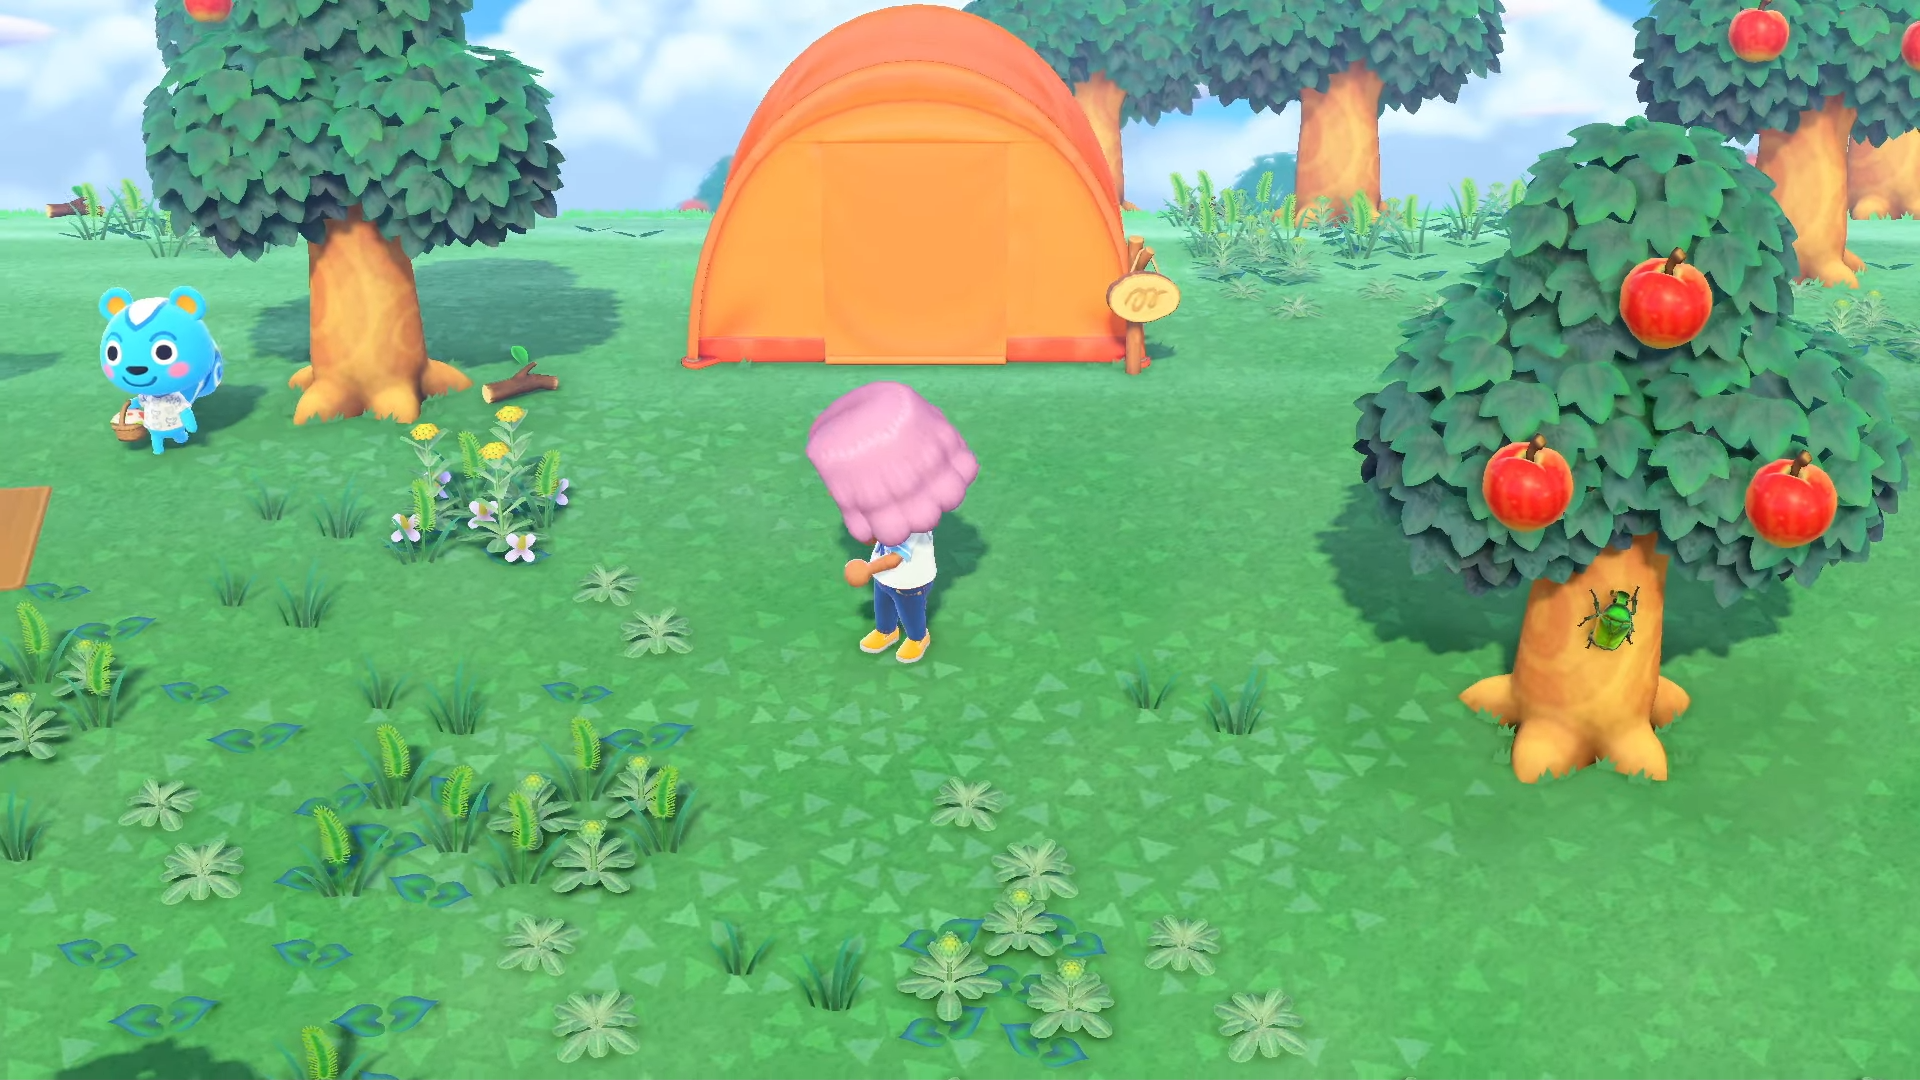 Insecte ressemblant au nitidule, Animal Crossing: New Horizons